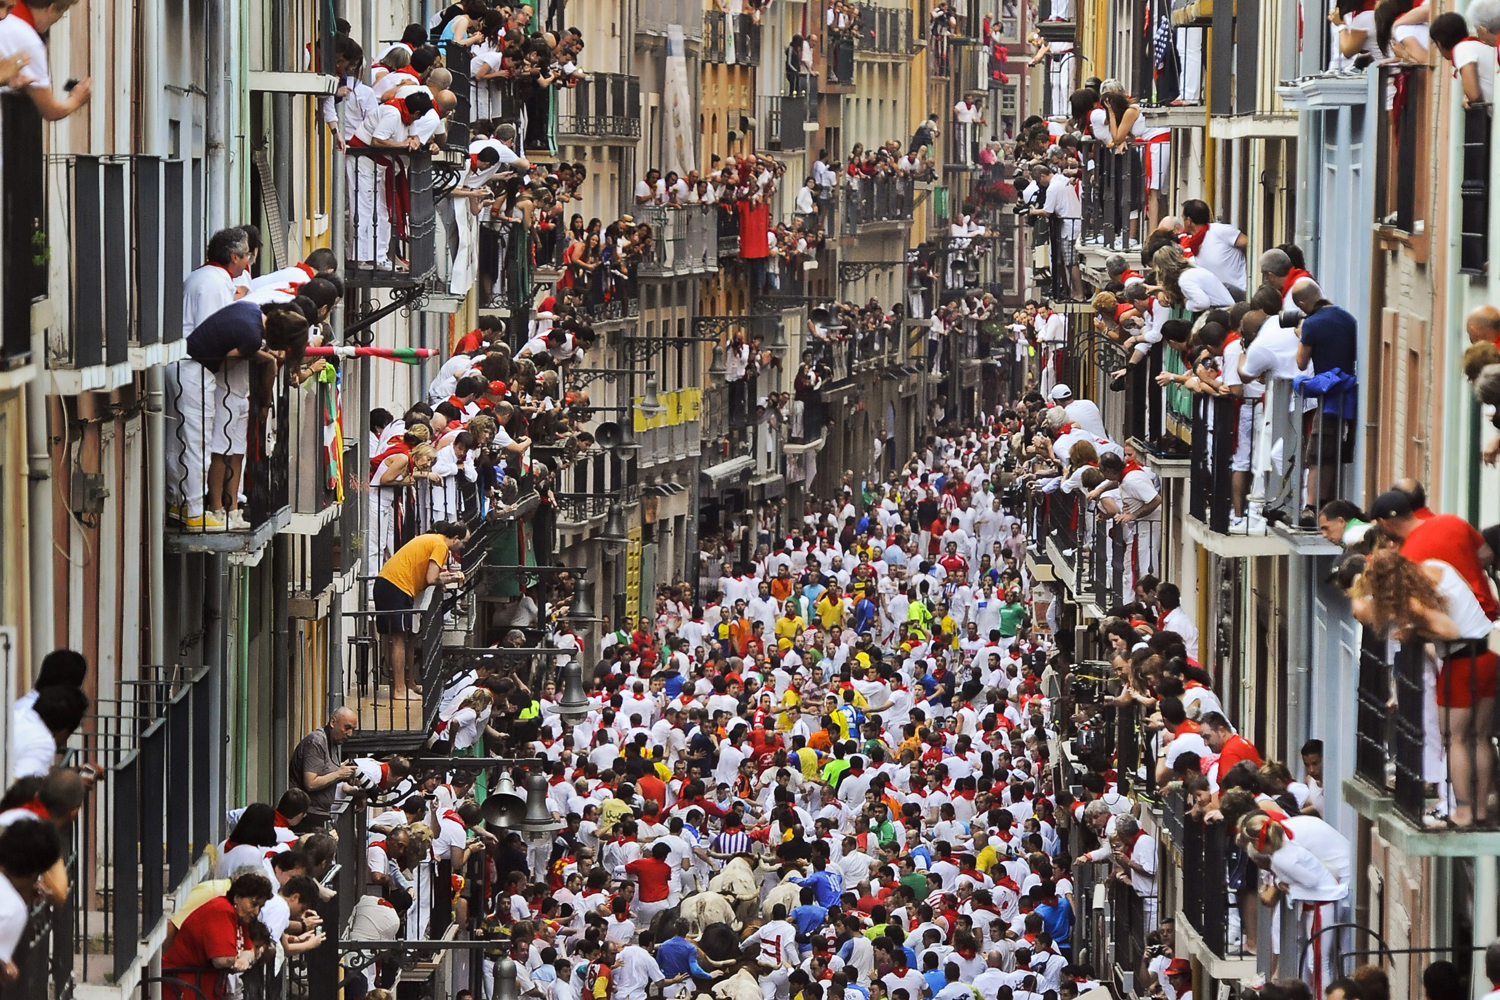 July 12, 2013. Runners make their way through the street with  El Pilar  fighting bulls watched by people from their balconies during the running of the bulls at the San Fermin festival, in Pamplona, Spain.